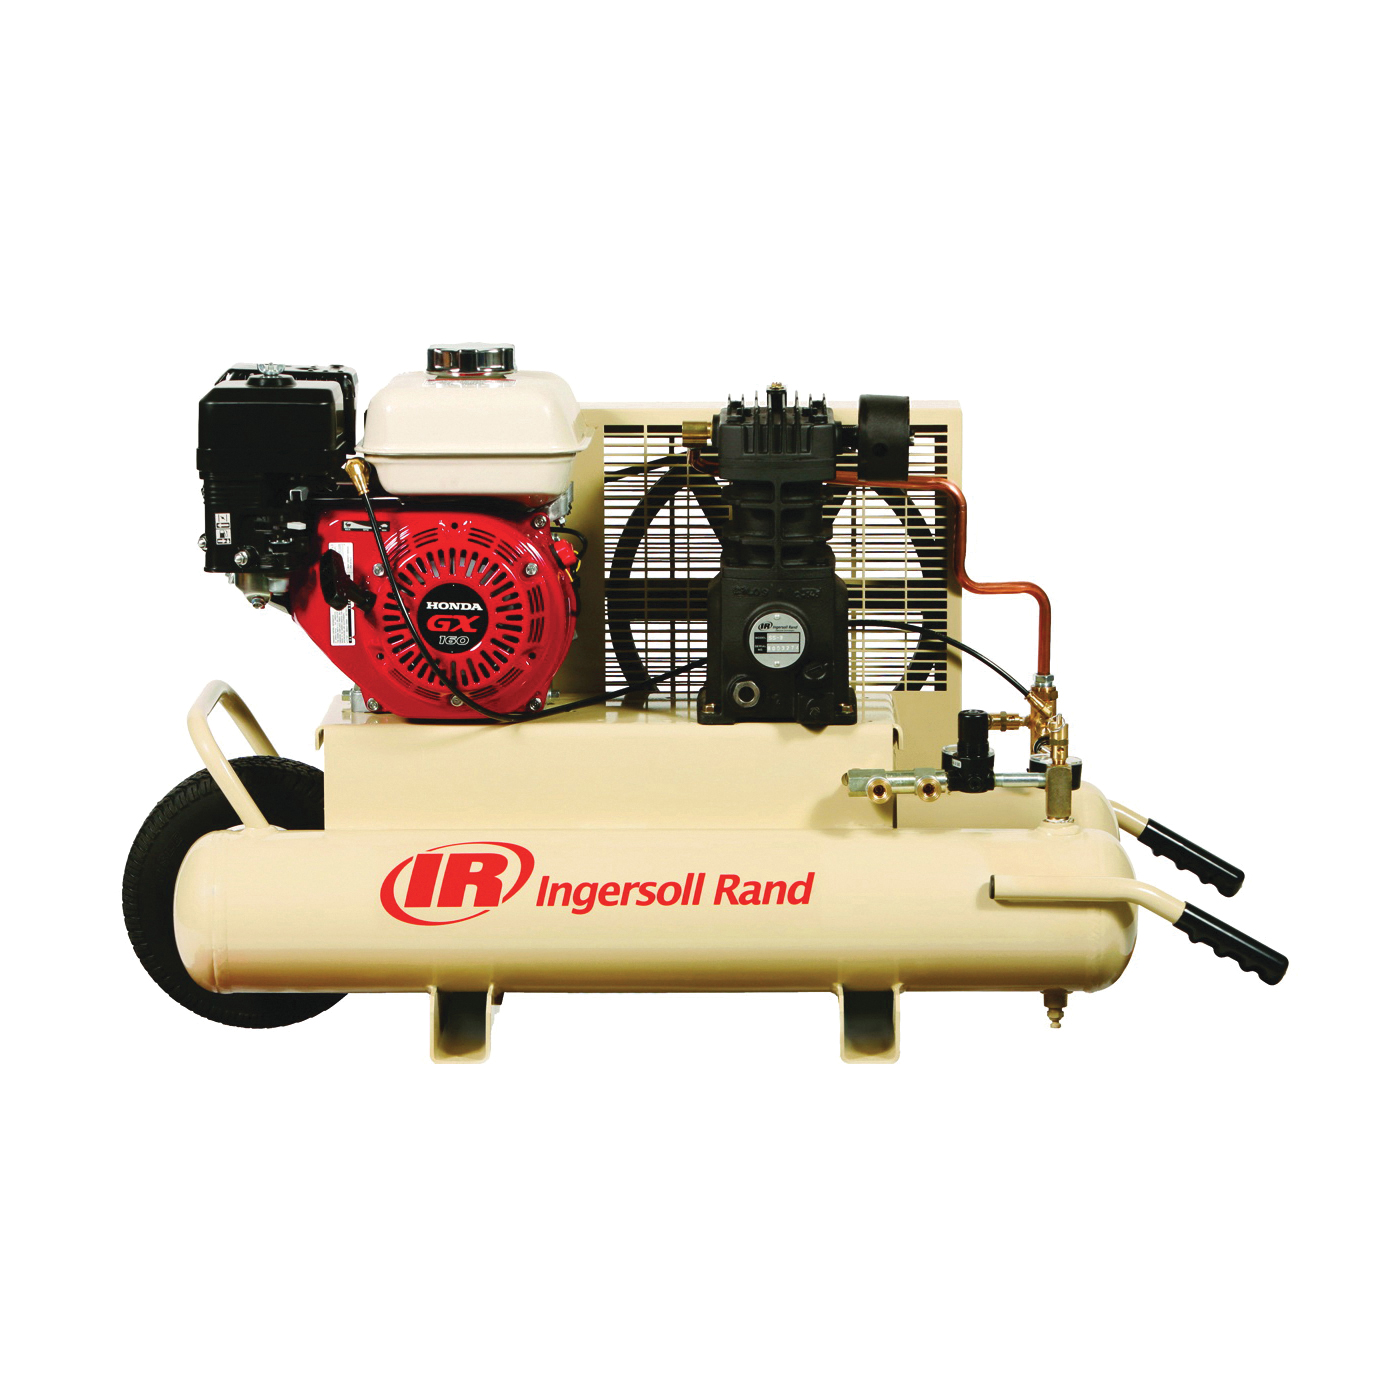 Picture of Ingersoll Rand SS3J5.5GH-WB Small Portable Air Compressor, 8 gal Tank, 5 hp, 135 psi Pressure, 1 -Stage, 11 cfm Air